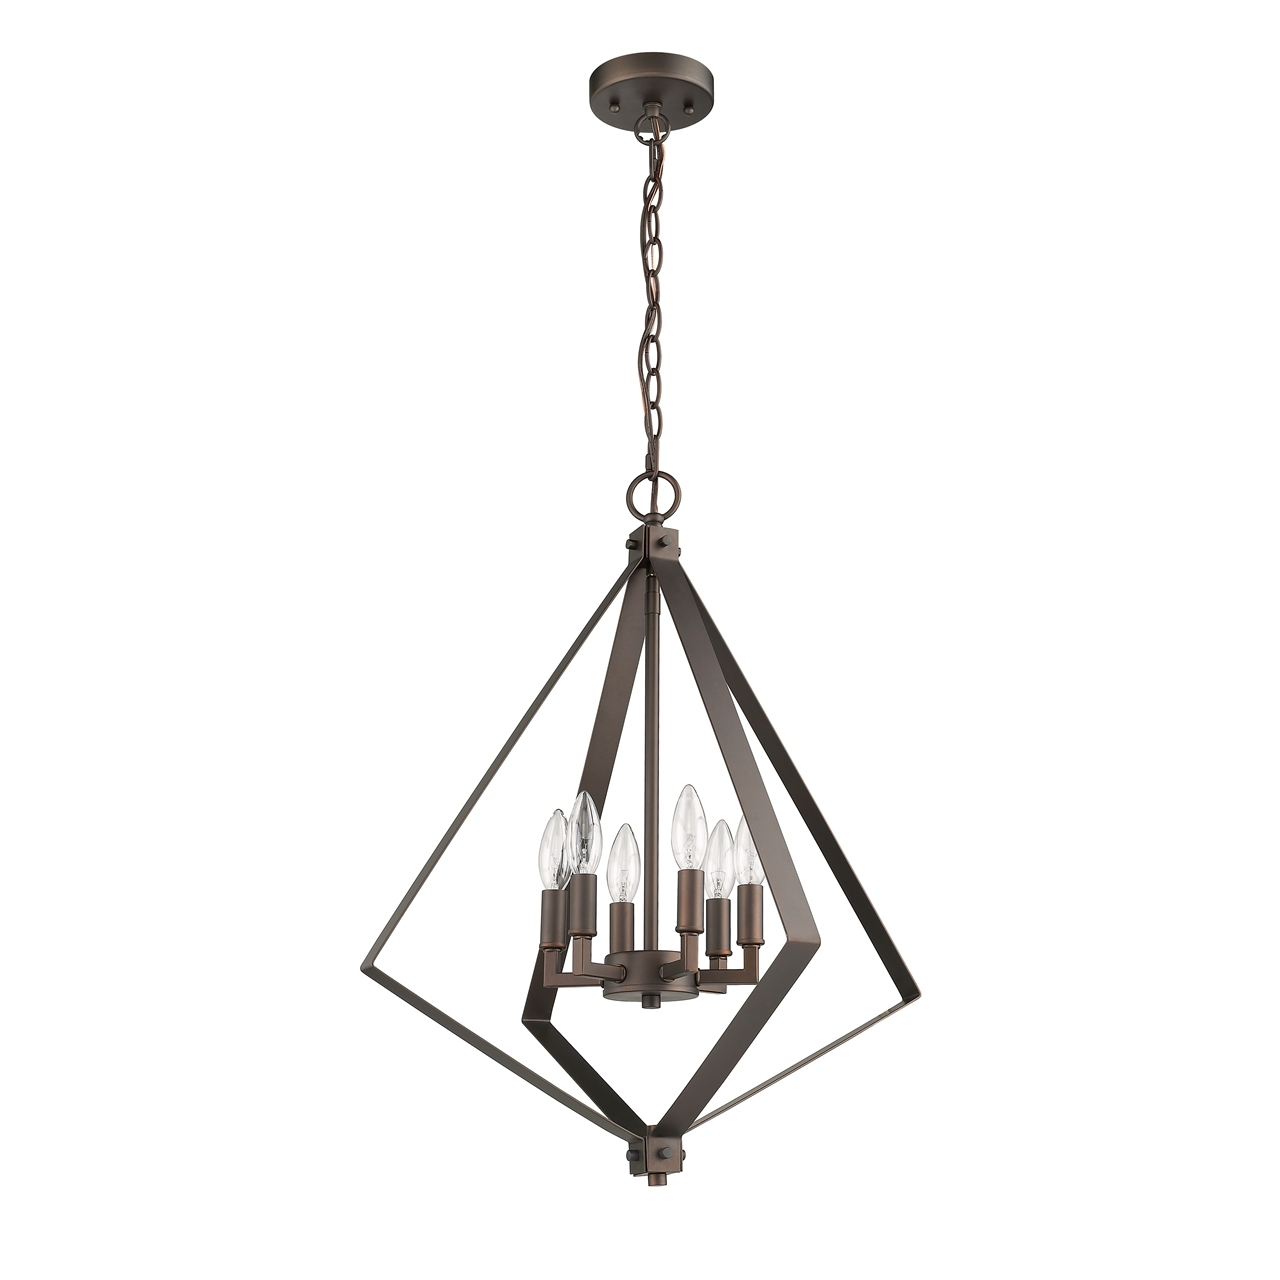 Chloe Lighting Inc Ch2s116rb20 Up6 Inverted Pendant